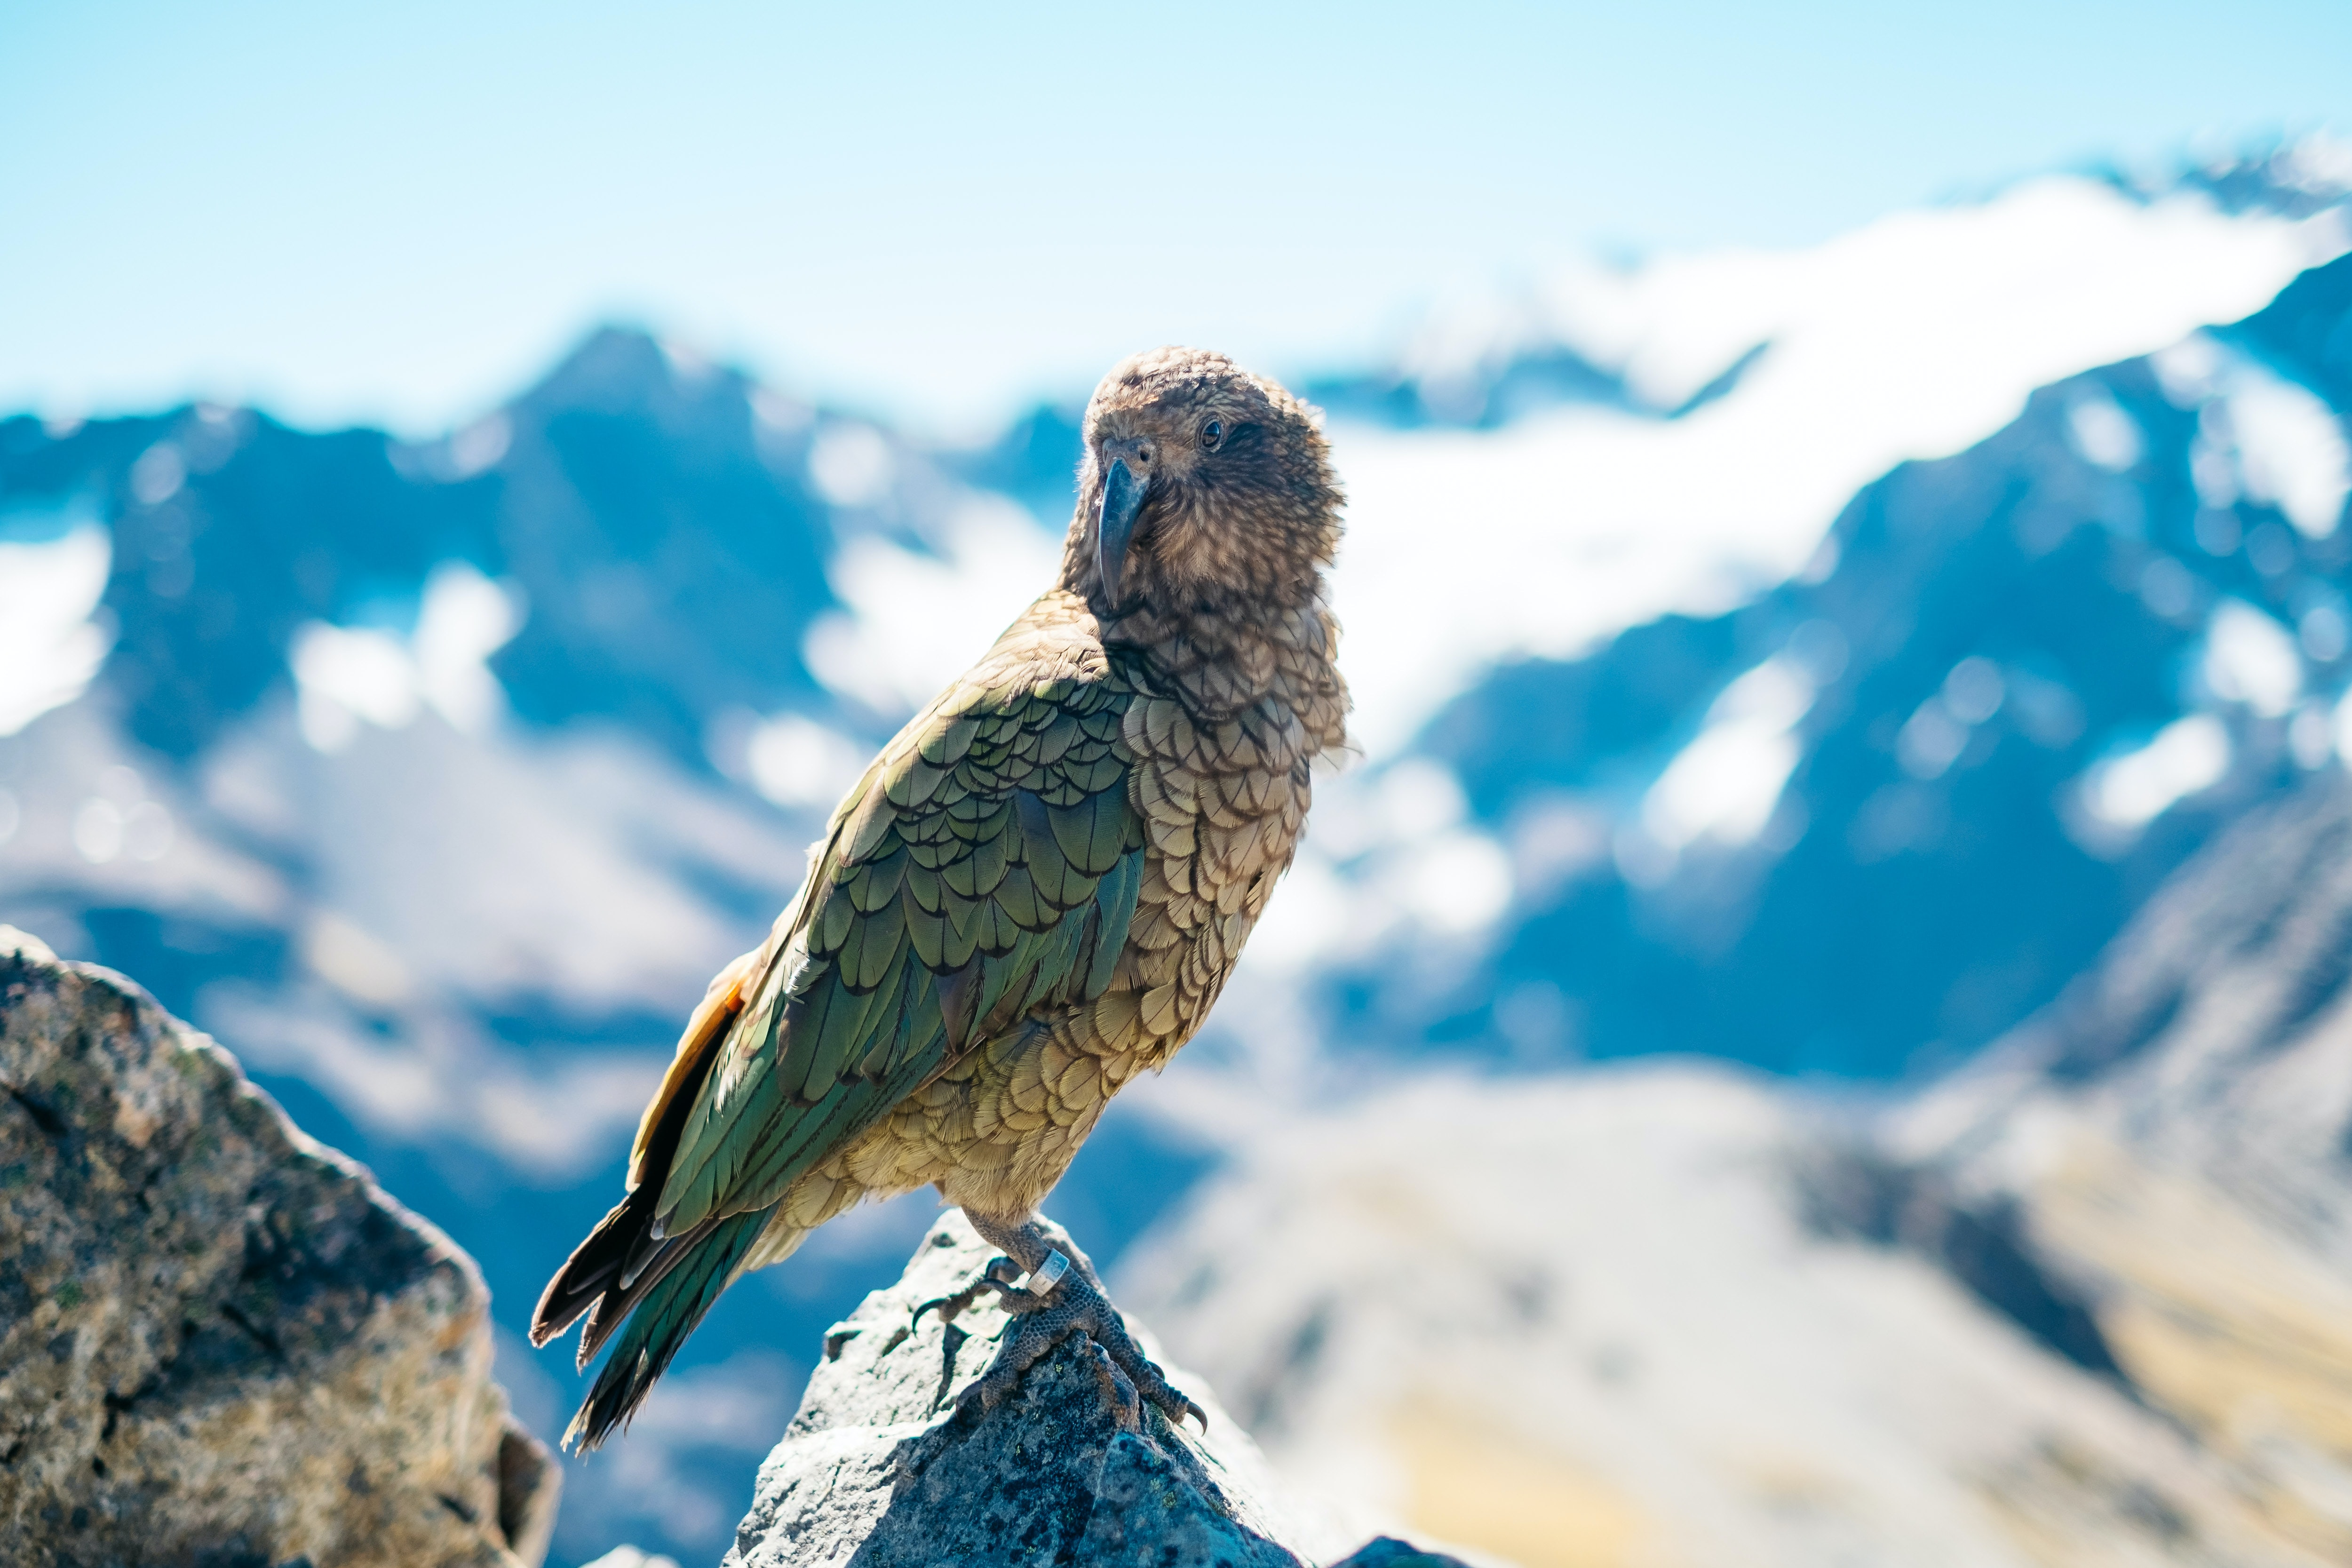 Small bird looks over shoulder in midst of snowy mountains at Arthur's Pass